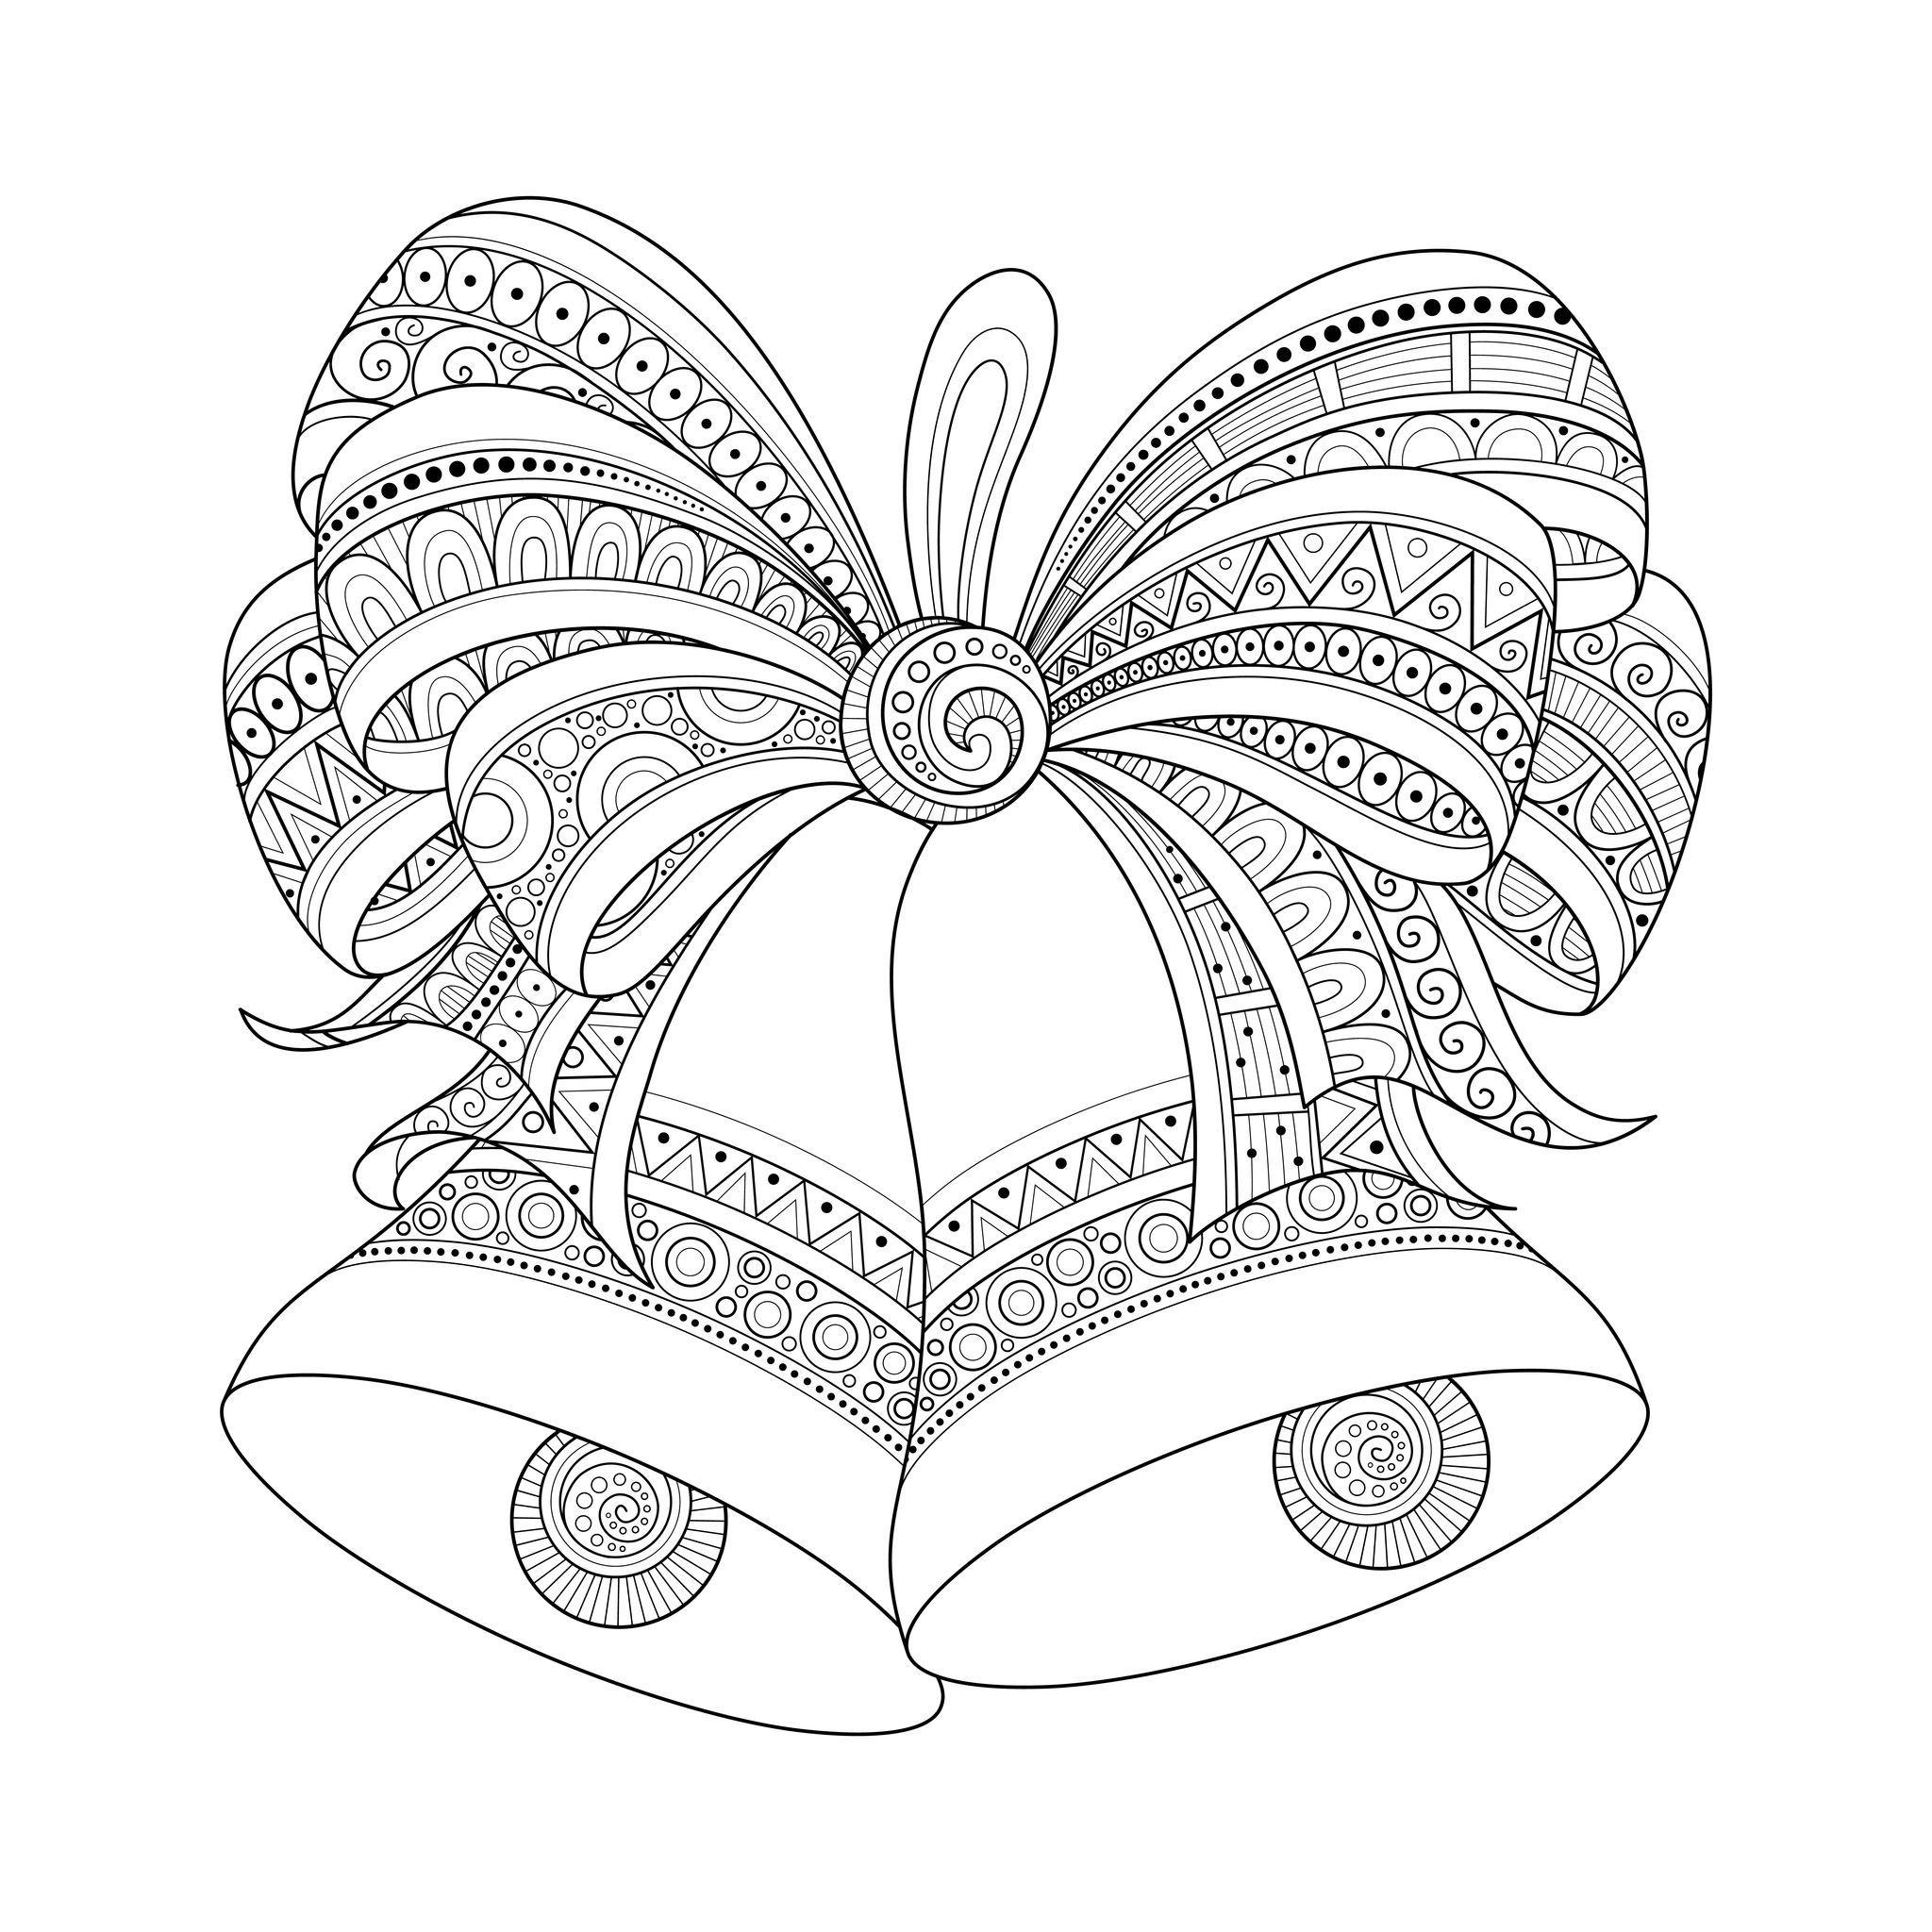 2048x2048 Christmas Golden Bells With Bow, Drawn With Zentangle Style,